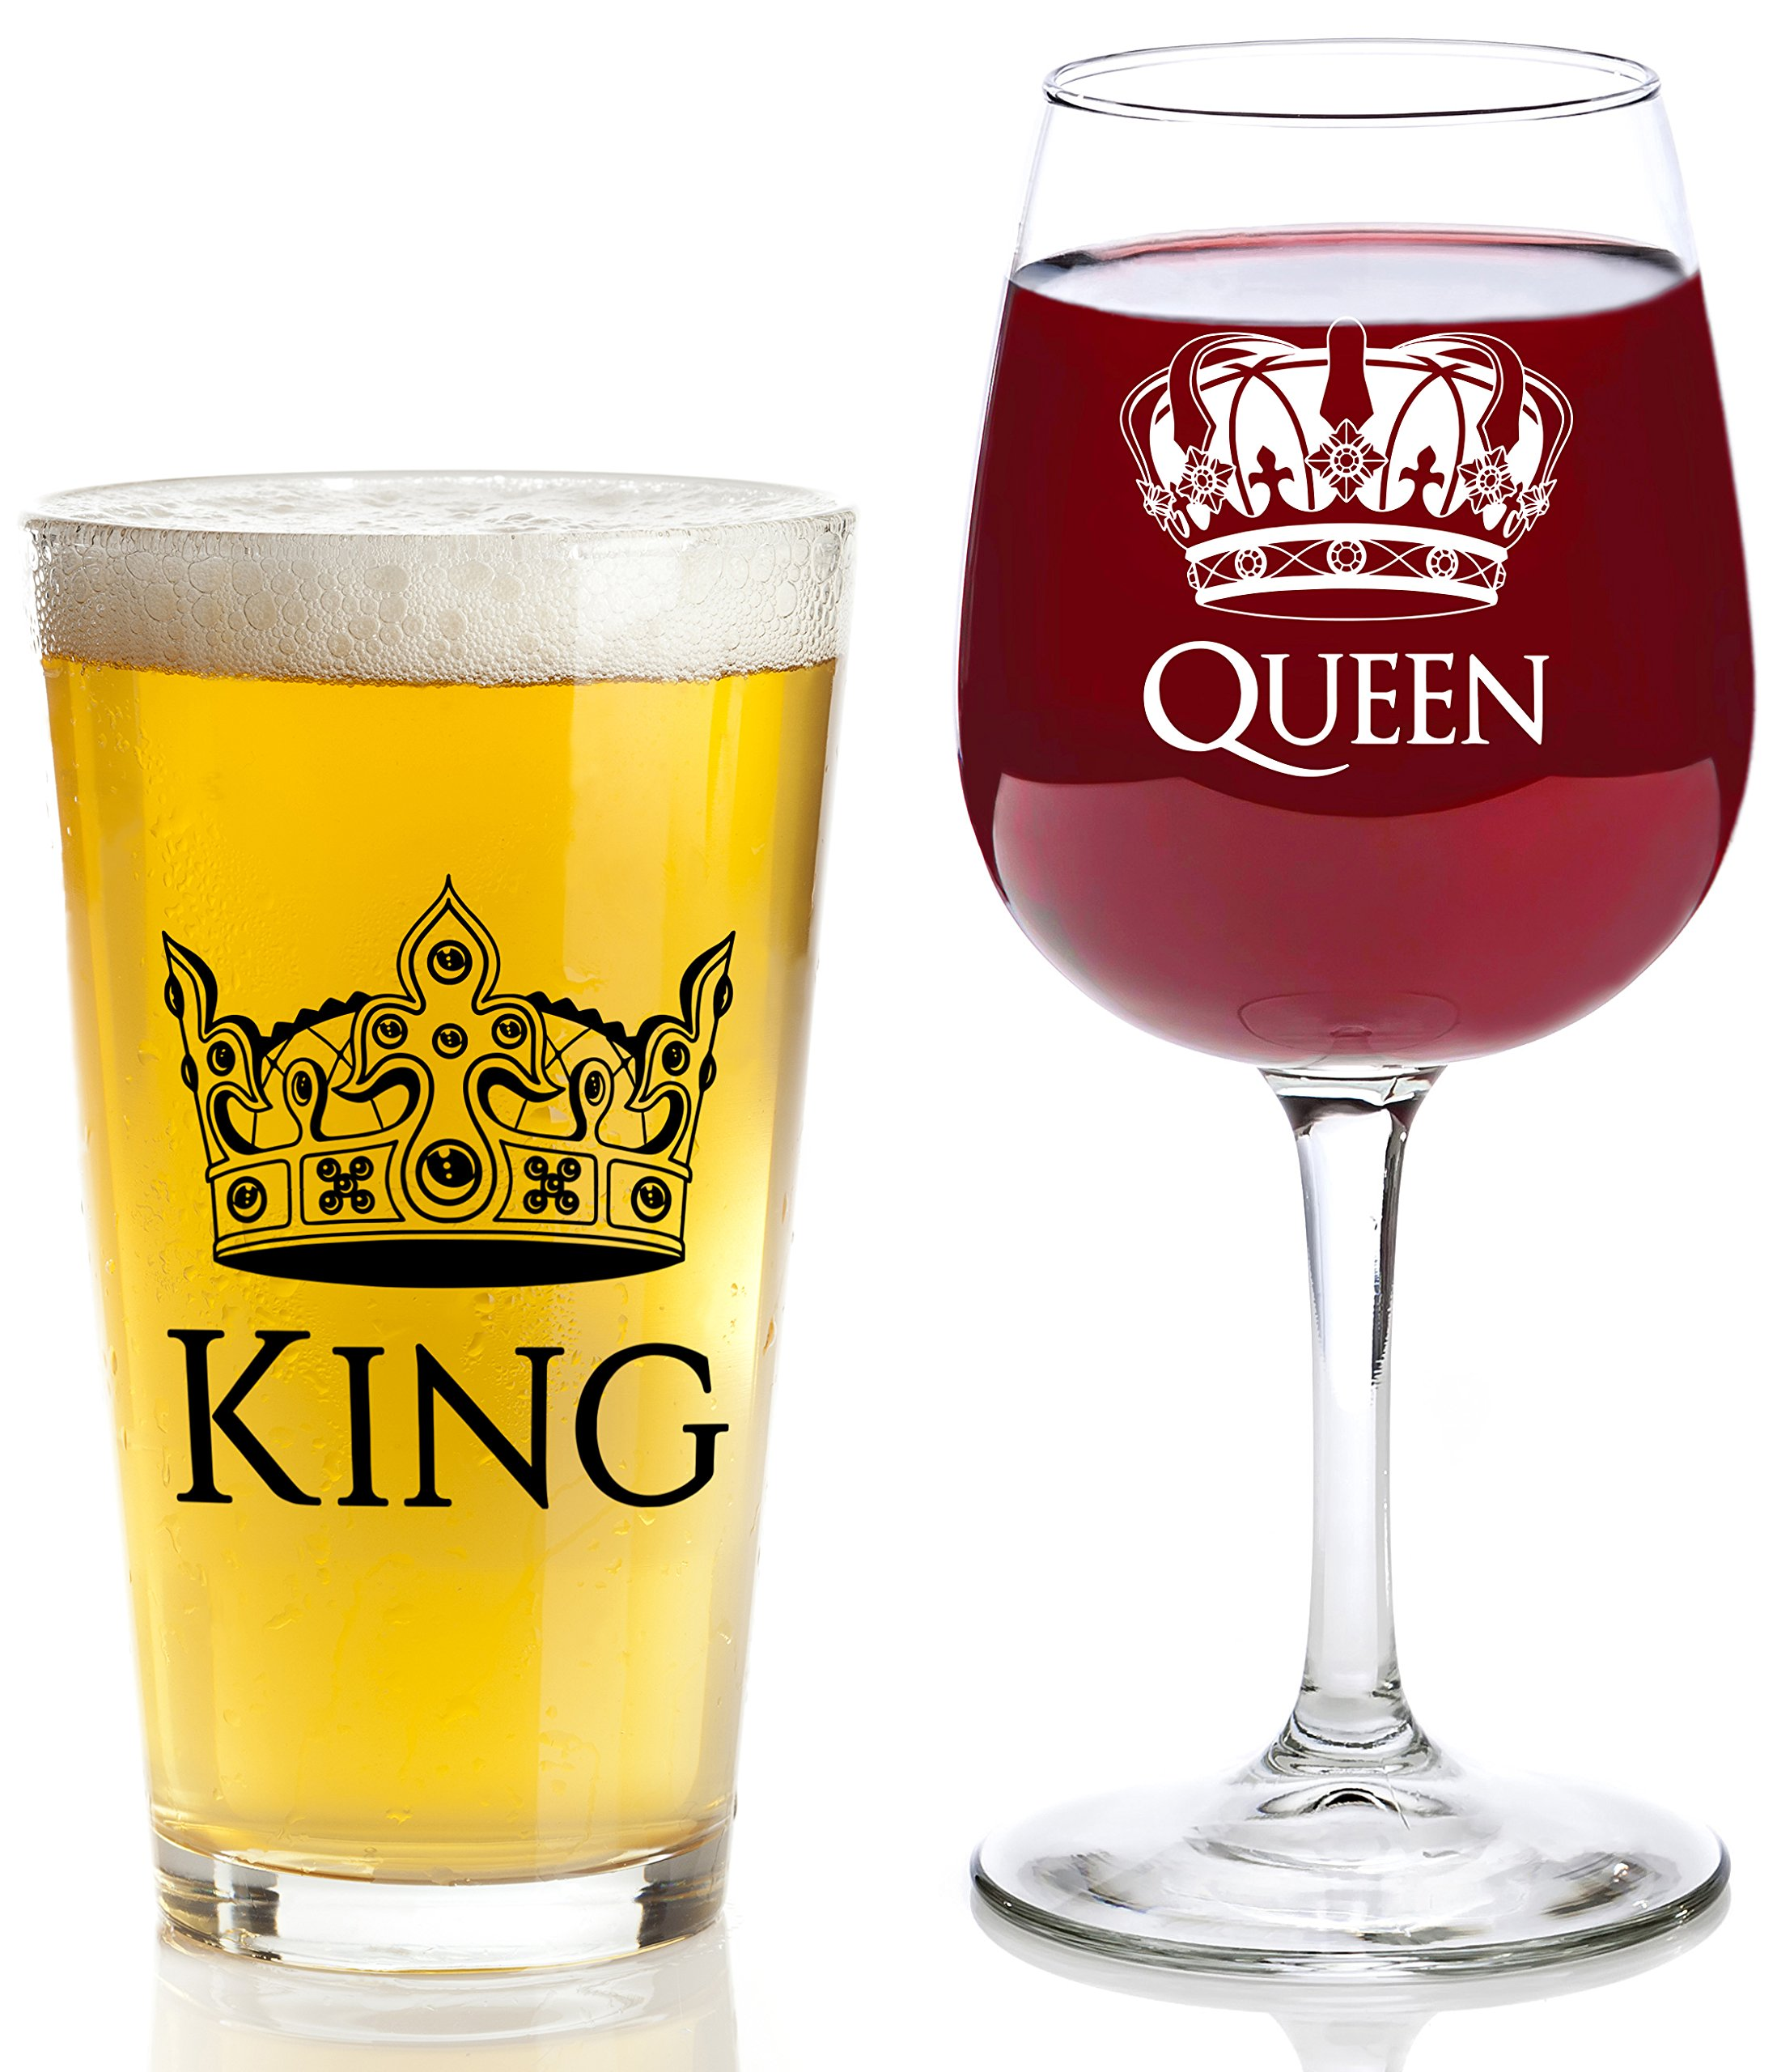 King and Queen Gift Set - 16 oz Beer Pint Glass, 13 oz Wine Glass - Father's Day Present Idea, Wedding, Engagement, Housewarming, Anniversary, Newlyweds, Couples, Parents, Mom, Dad, Him, Her, Mr Mrs